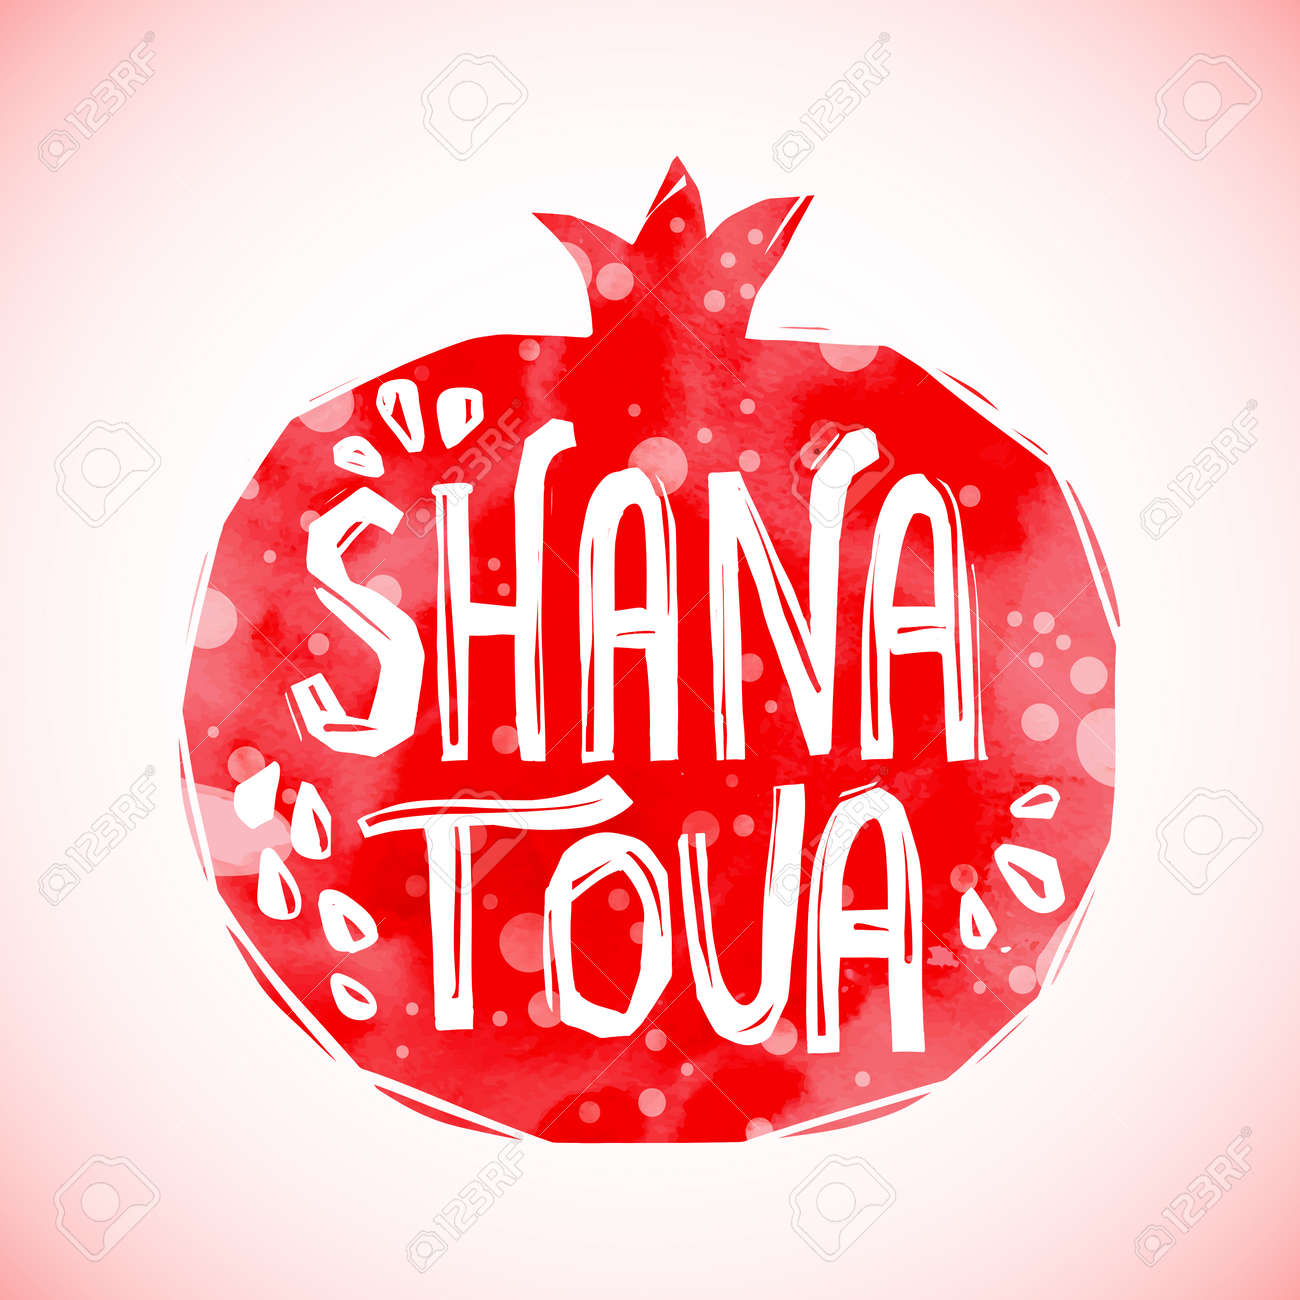 Rosh hashanah greeting card with pomegranate shana tova or jewish rosh hashanah greeting card with pomegranate shana tova or jewish new year symbols stock vector kristyandbryce Images